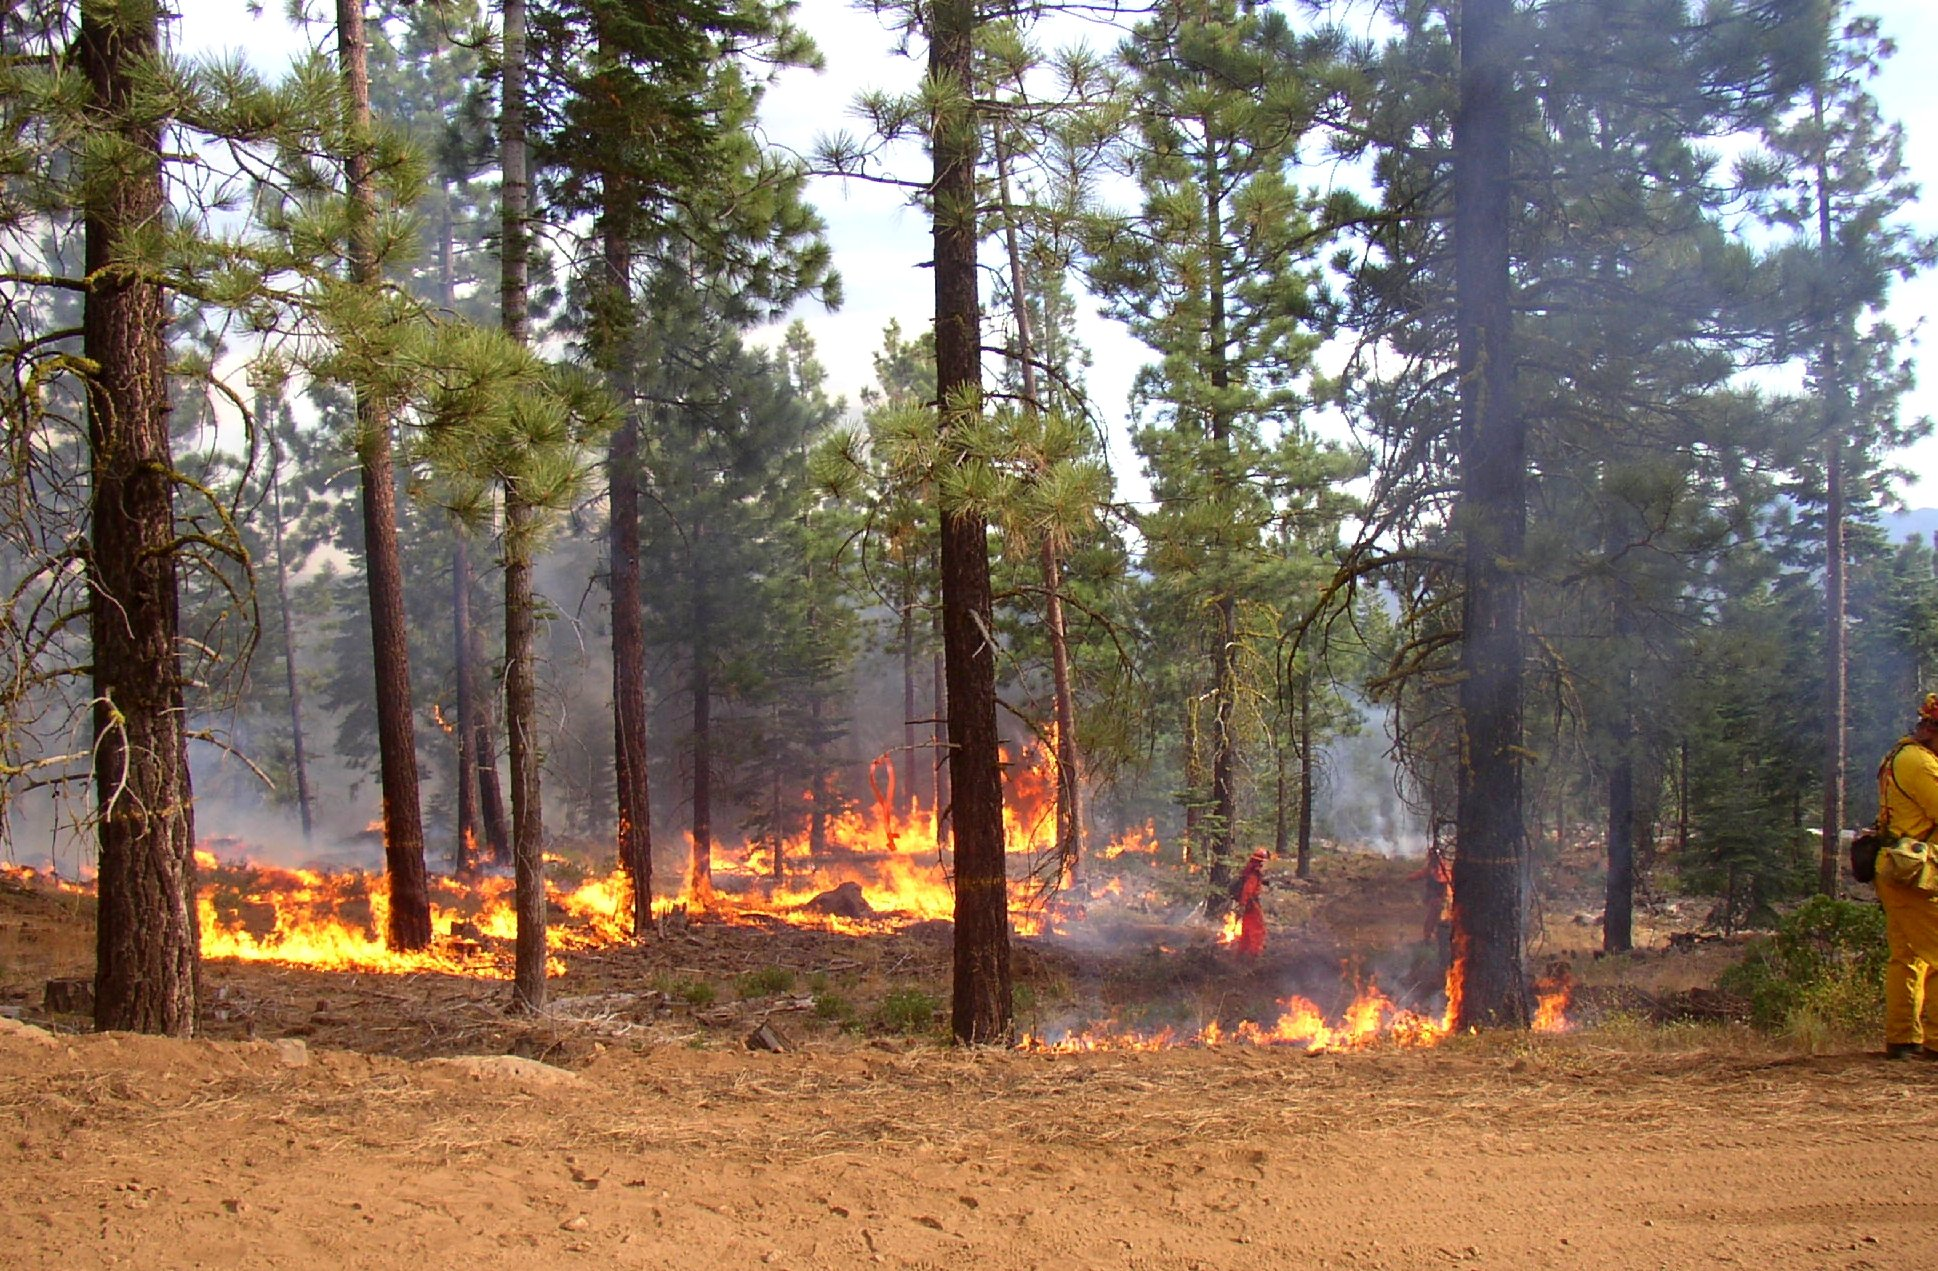 The Benefits of Prescribed Burns for Private Forested Land